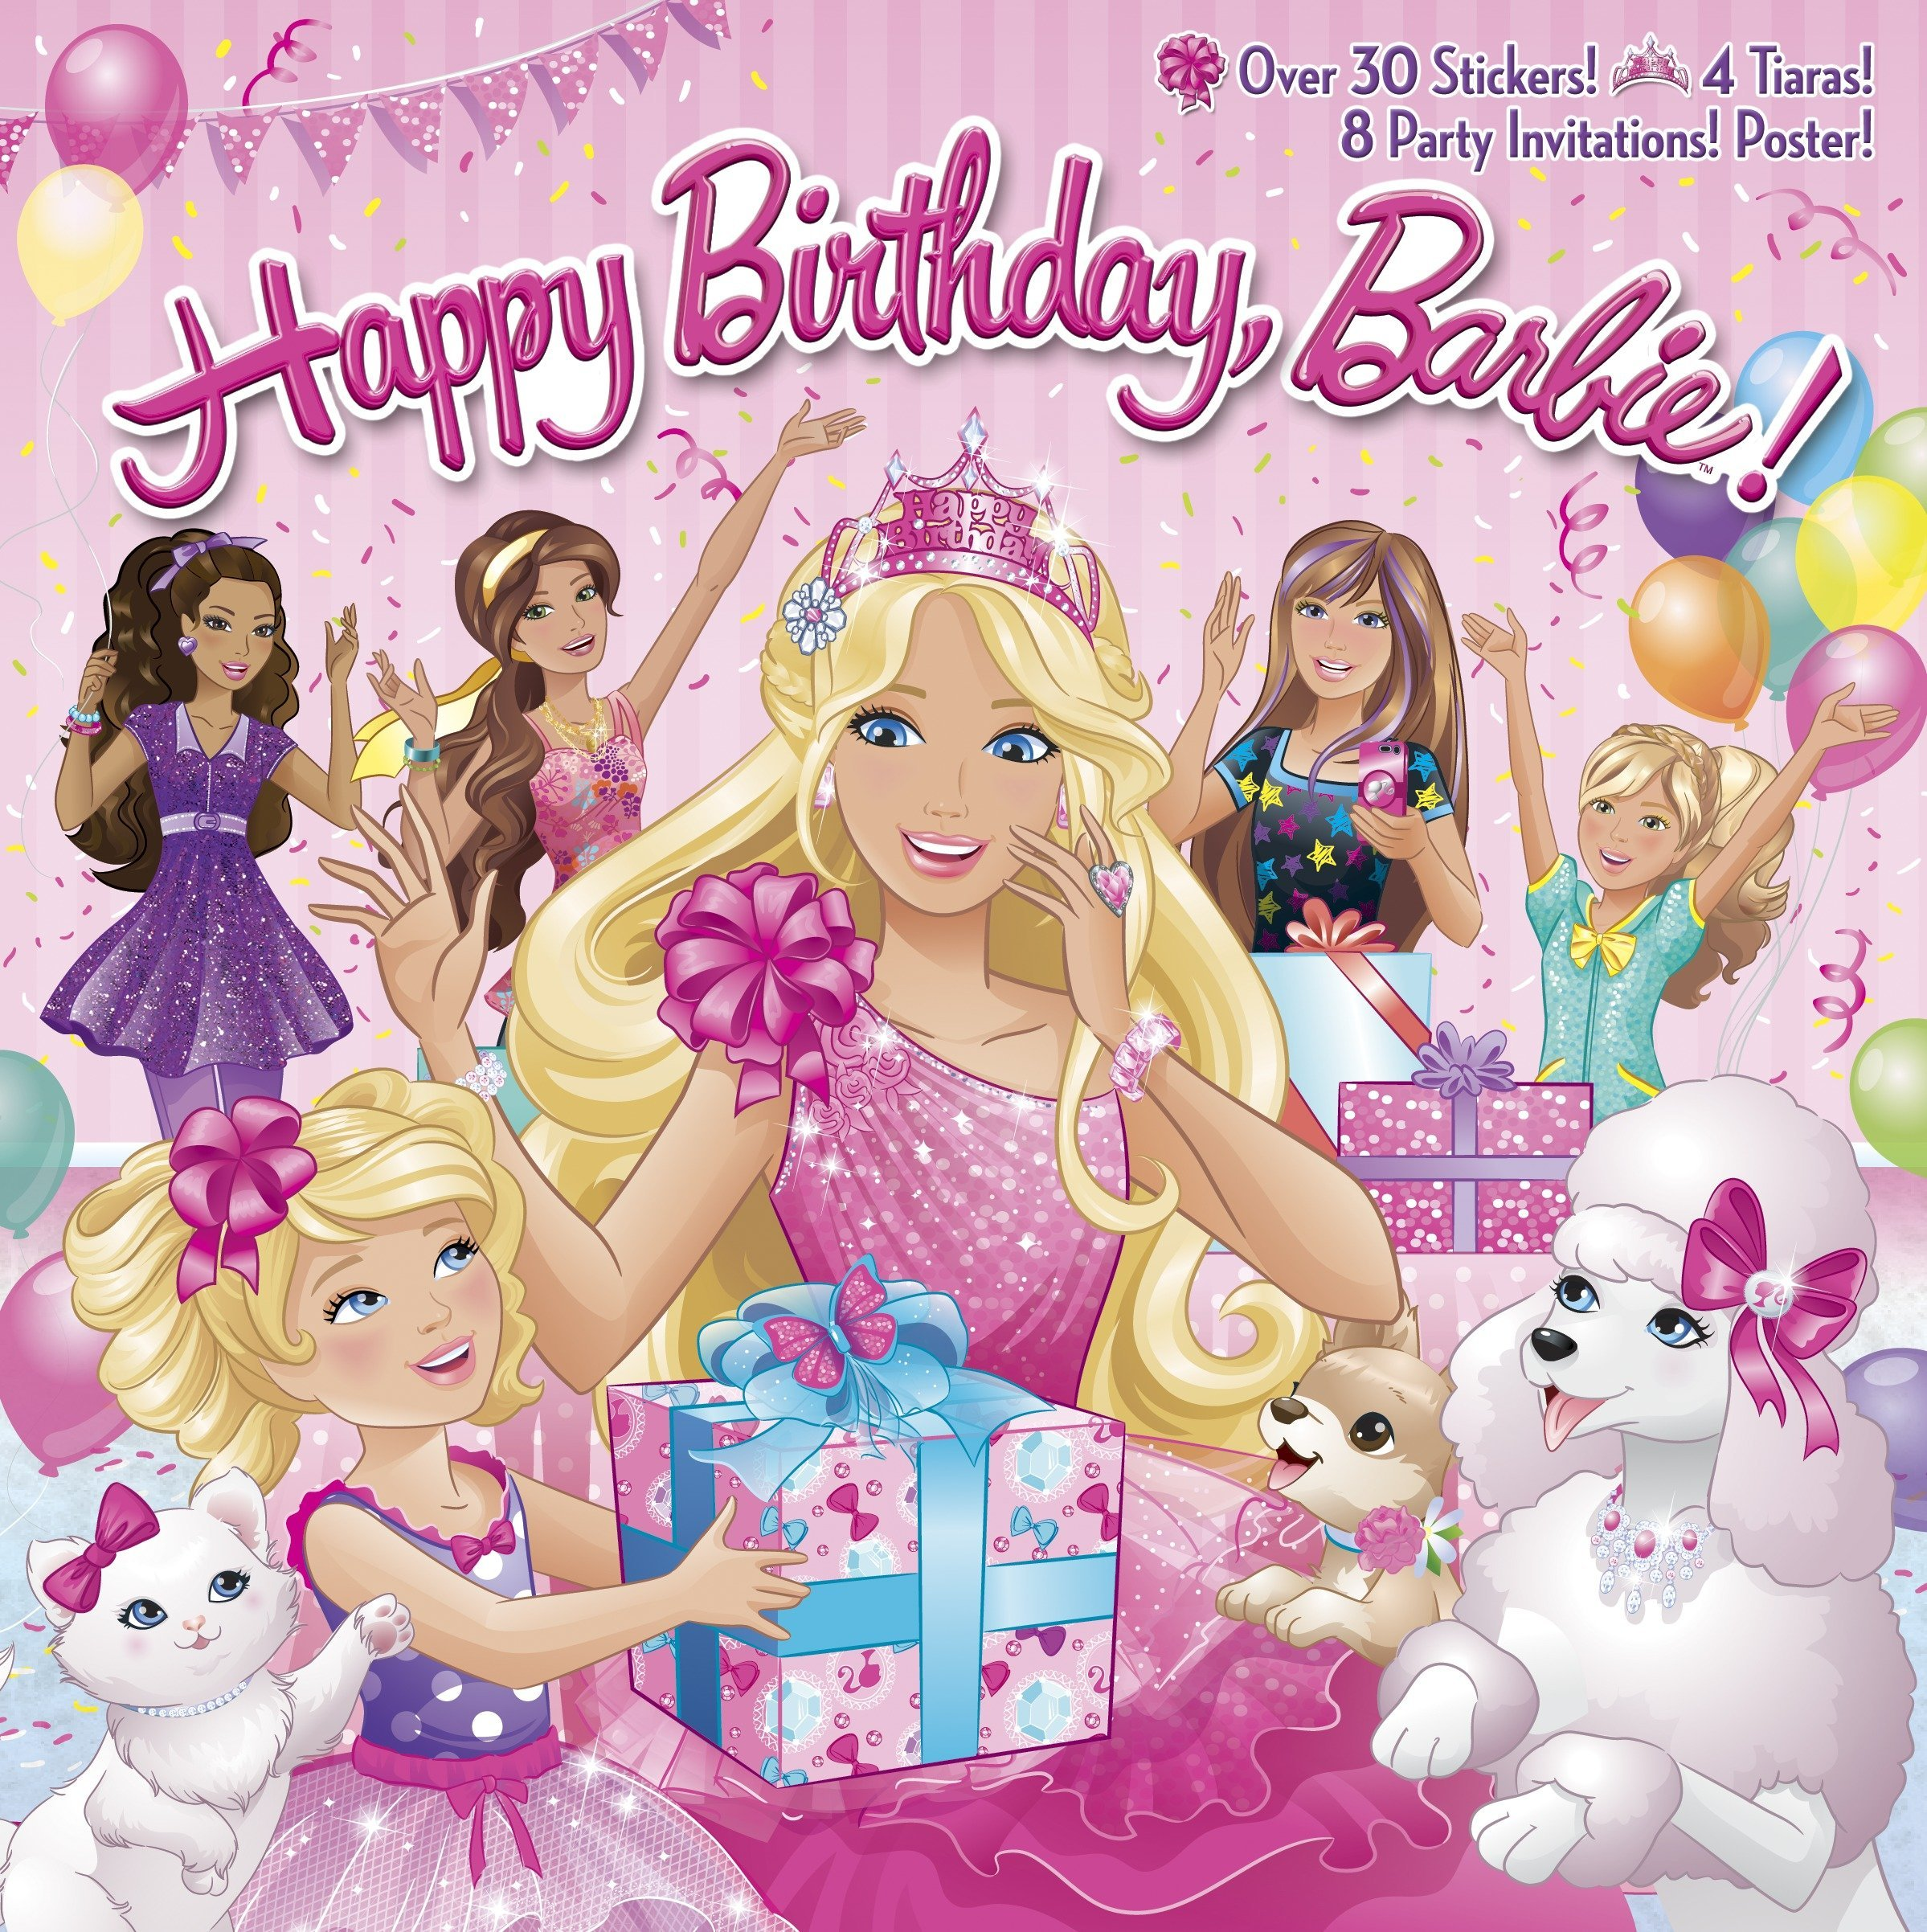 Happy Birthday Barbie PicturebackR Paperback January 7 2014